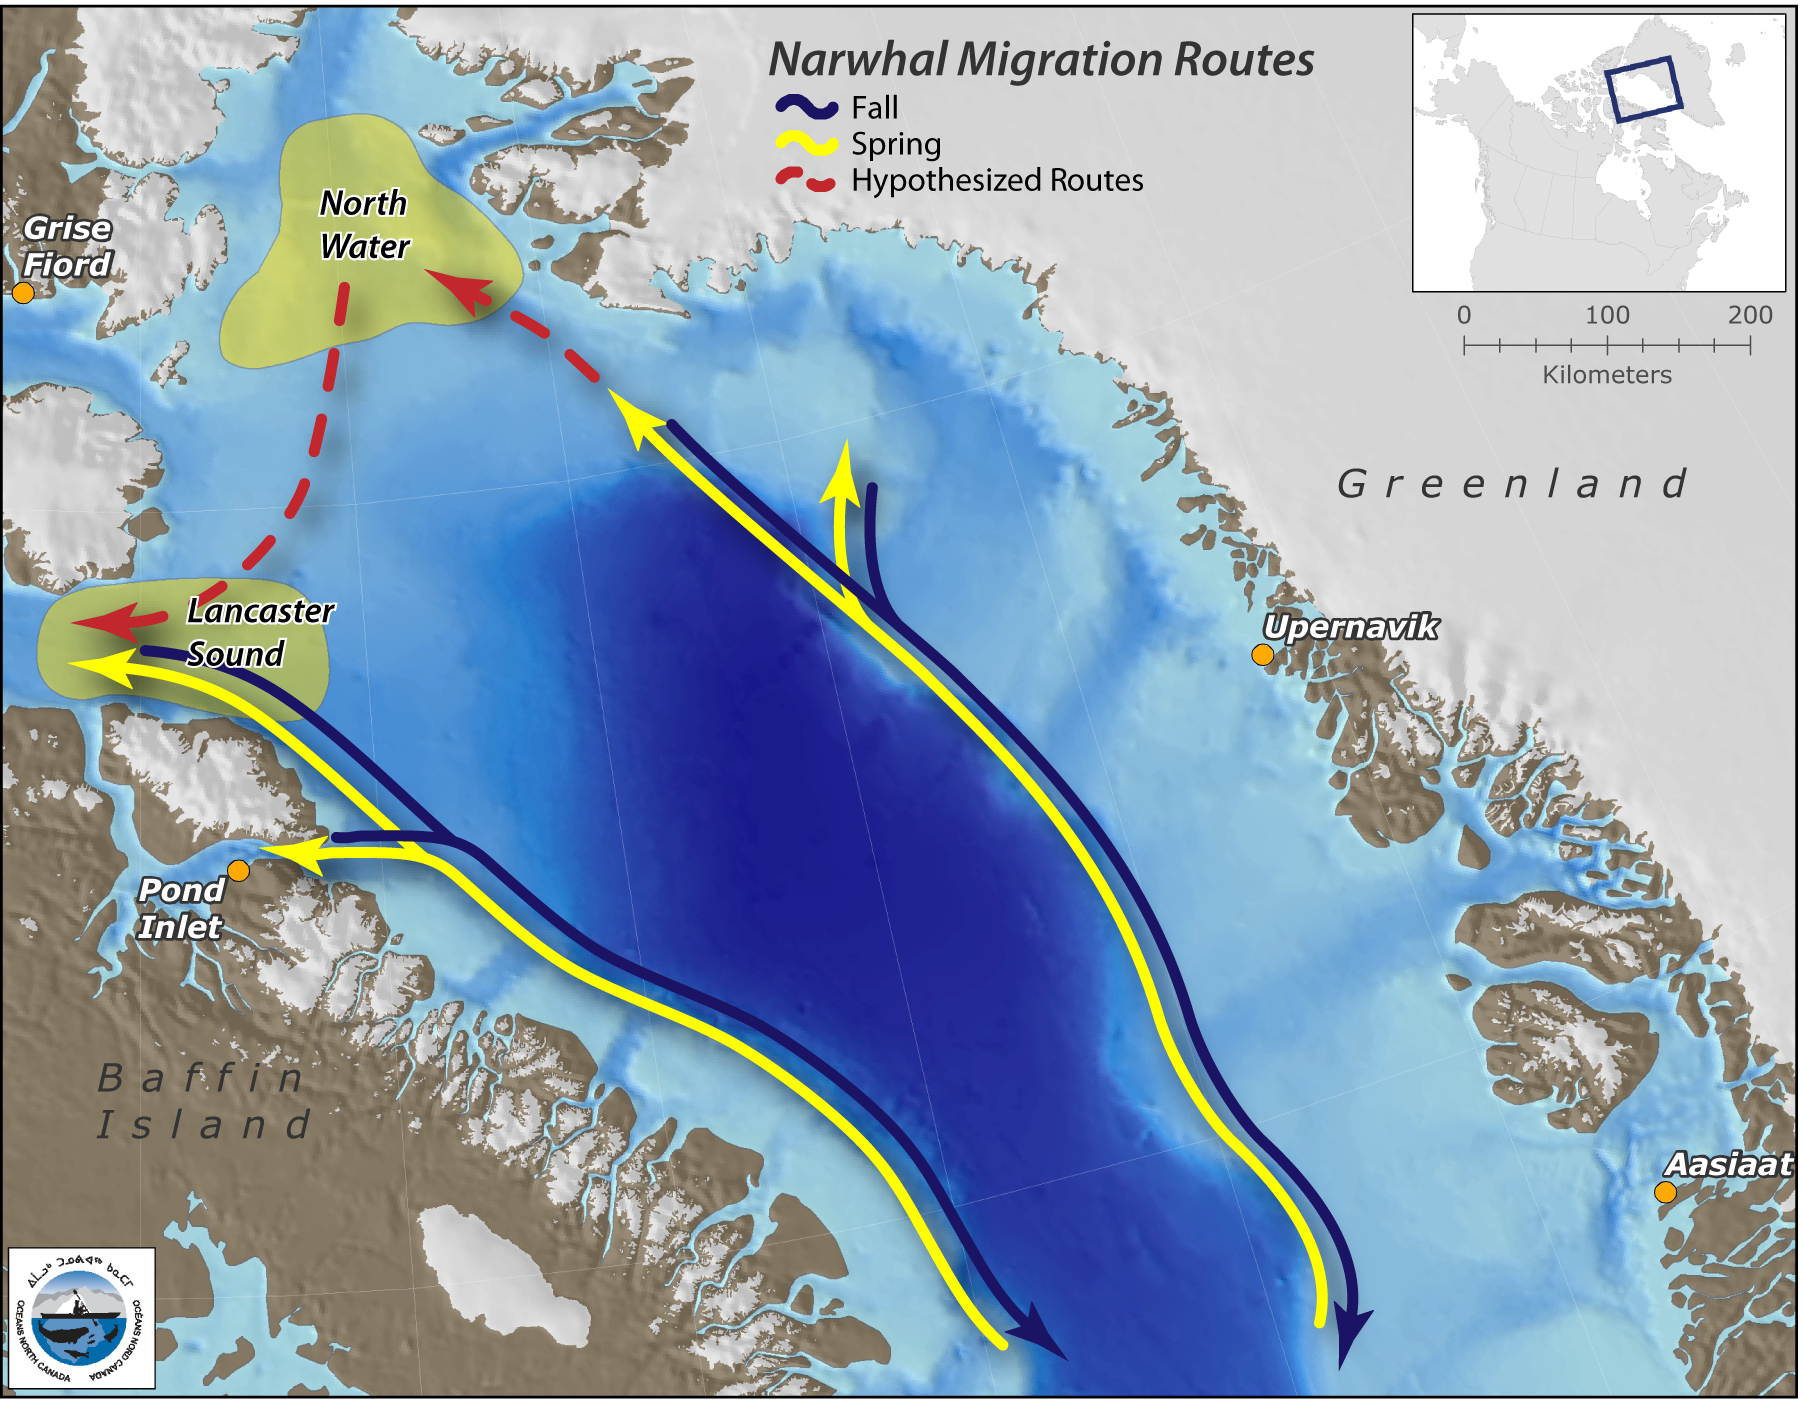 Narwhal, Belugas and Bowhead Whales   The Pew Charitable Trusts on bird migration route maps, manatee migration route maps, hummingbird migration route maps, killer whale migration route washington, killer whales orcas migration routes, humpback whale migration route maps, great white shark migration pattern maps, killer whales migrating path, killer worm harness walleye,